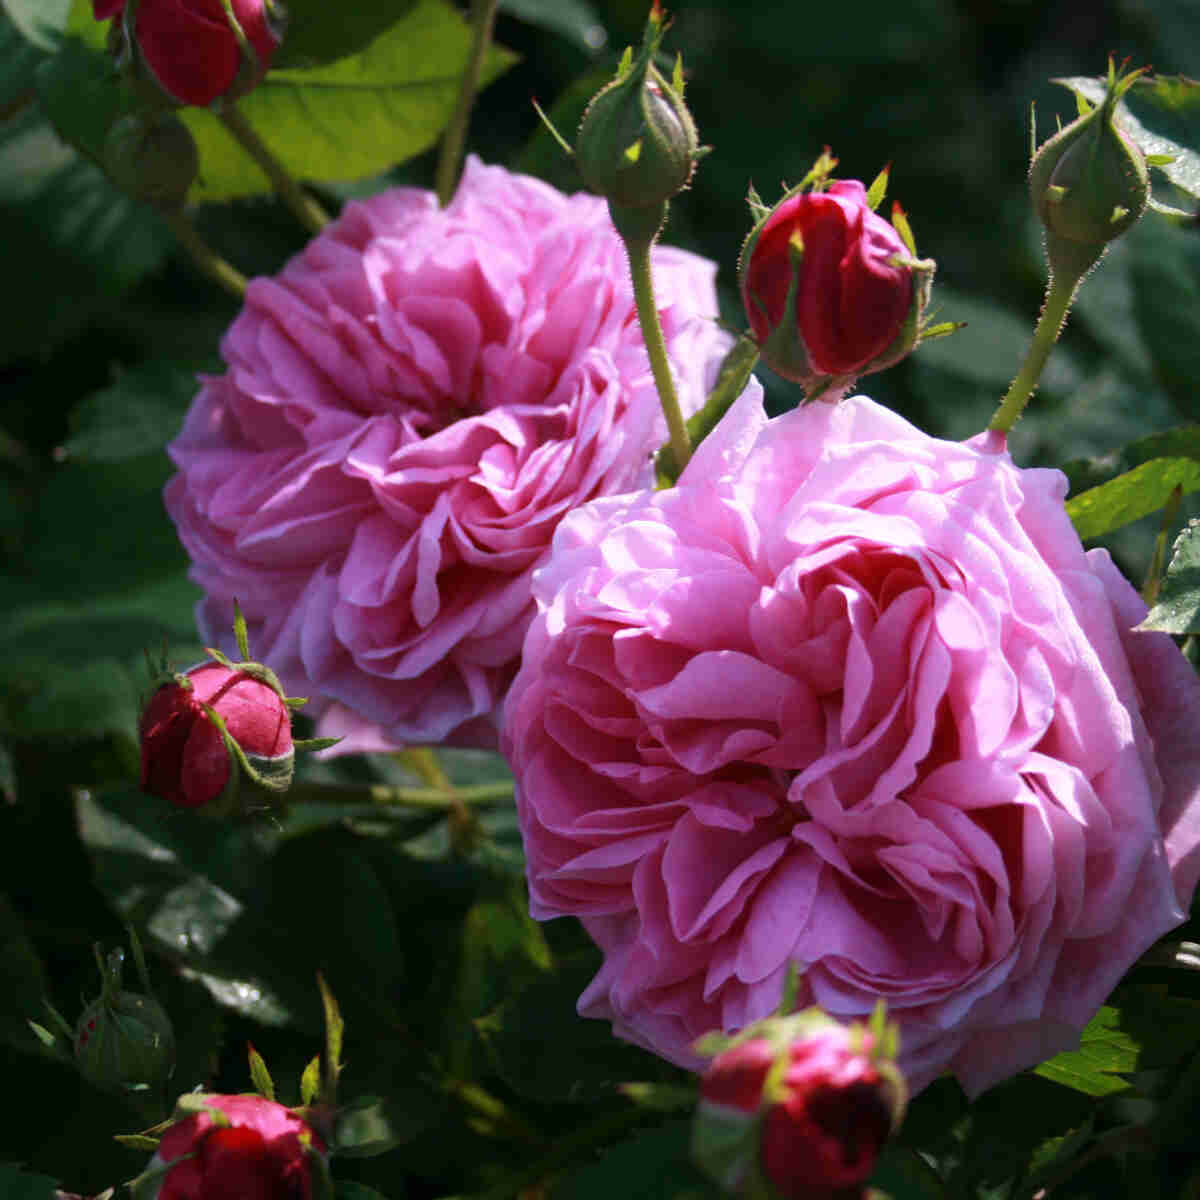 Rose 'Mme Isaac Pereire'